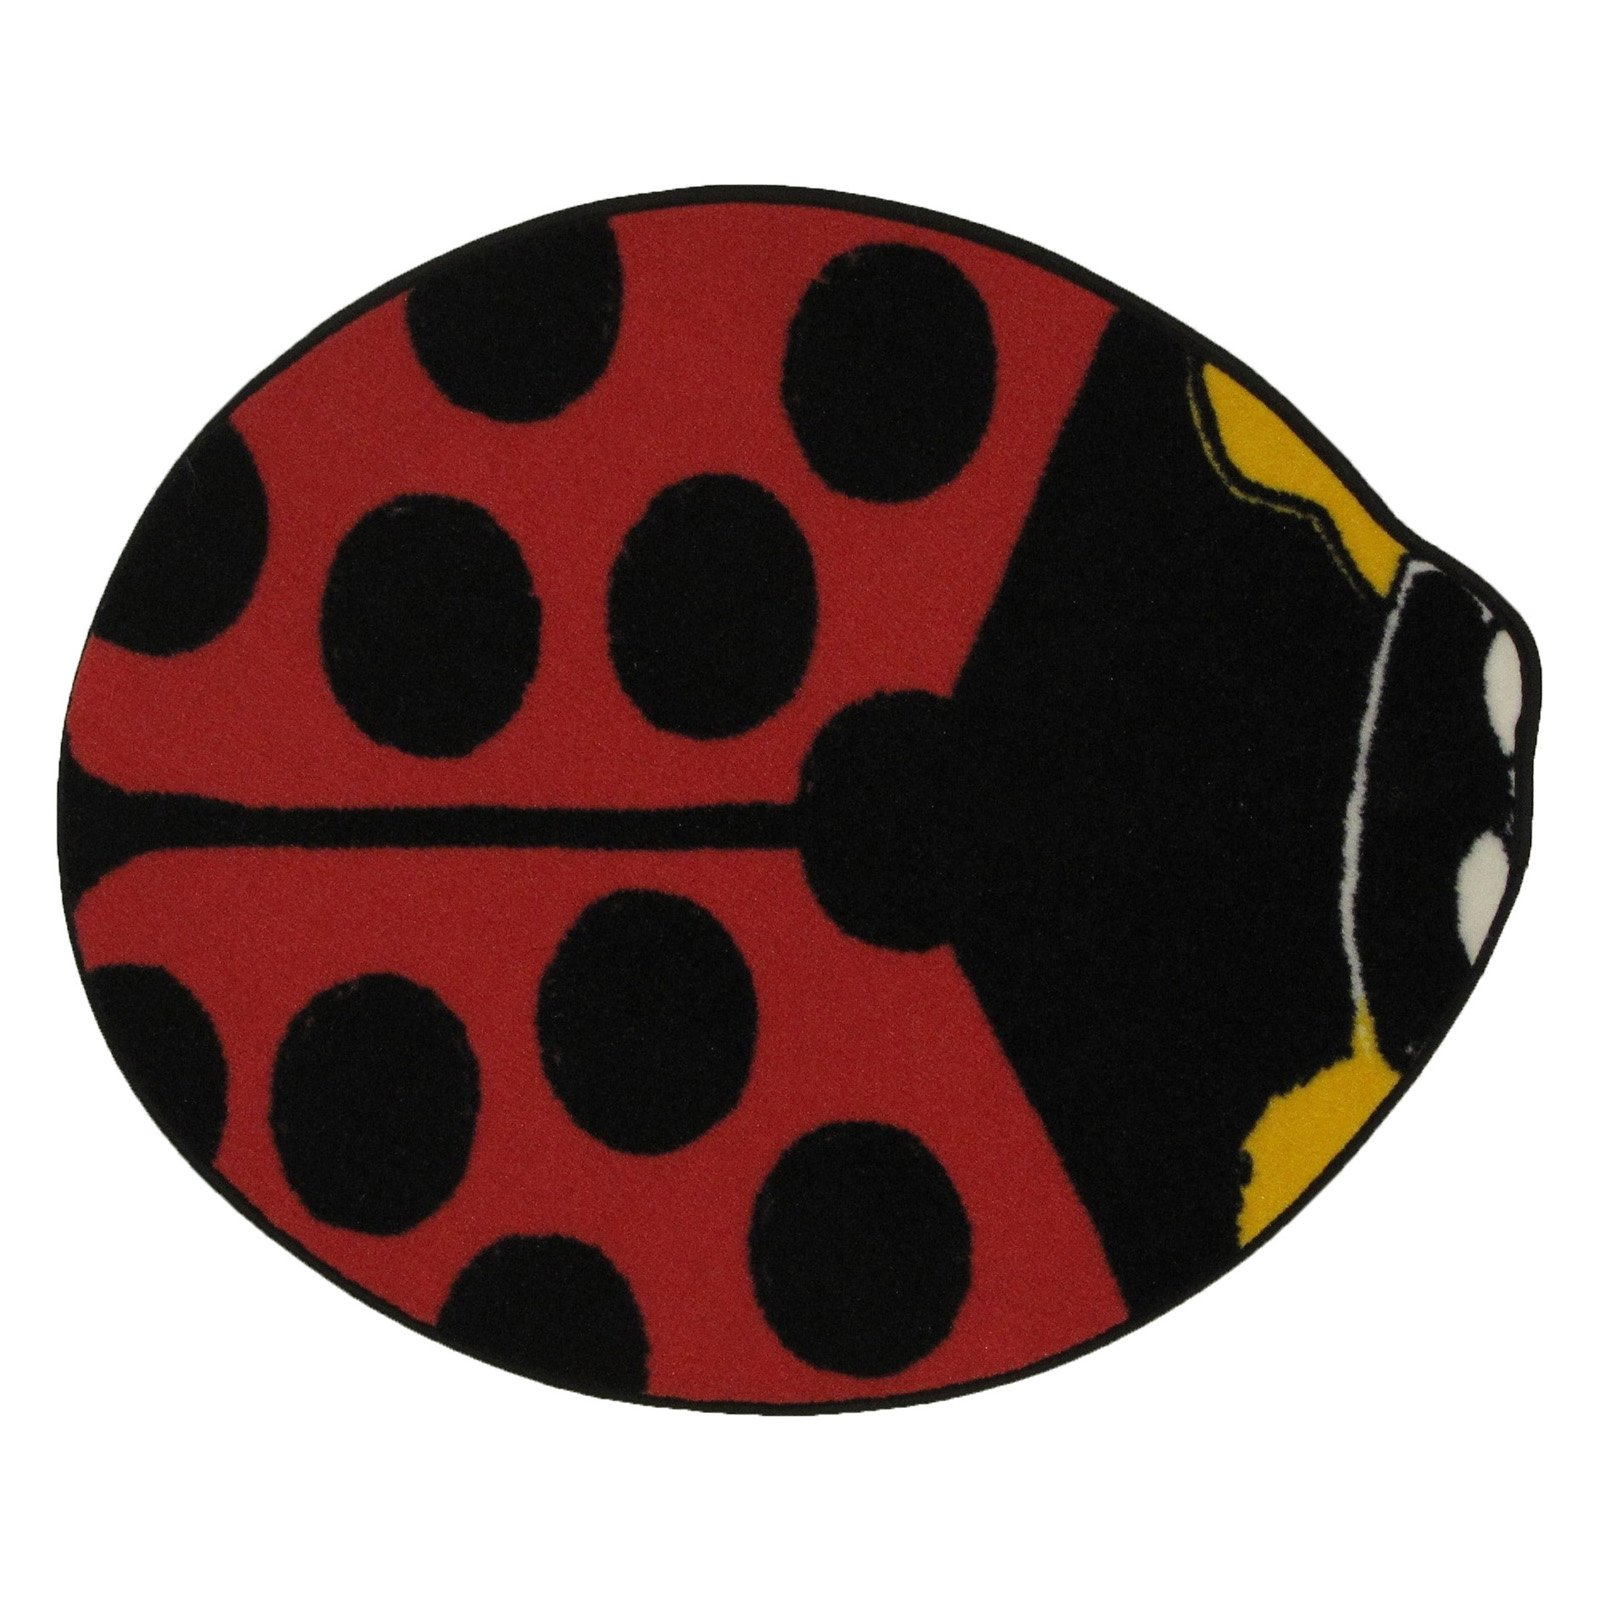 "Fun Rugs Red Lady Bug 35"" x 39"" Rug"